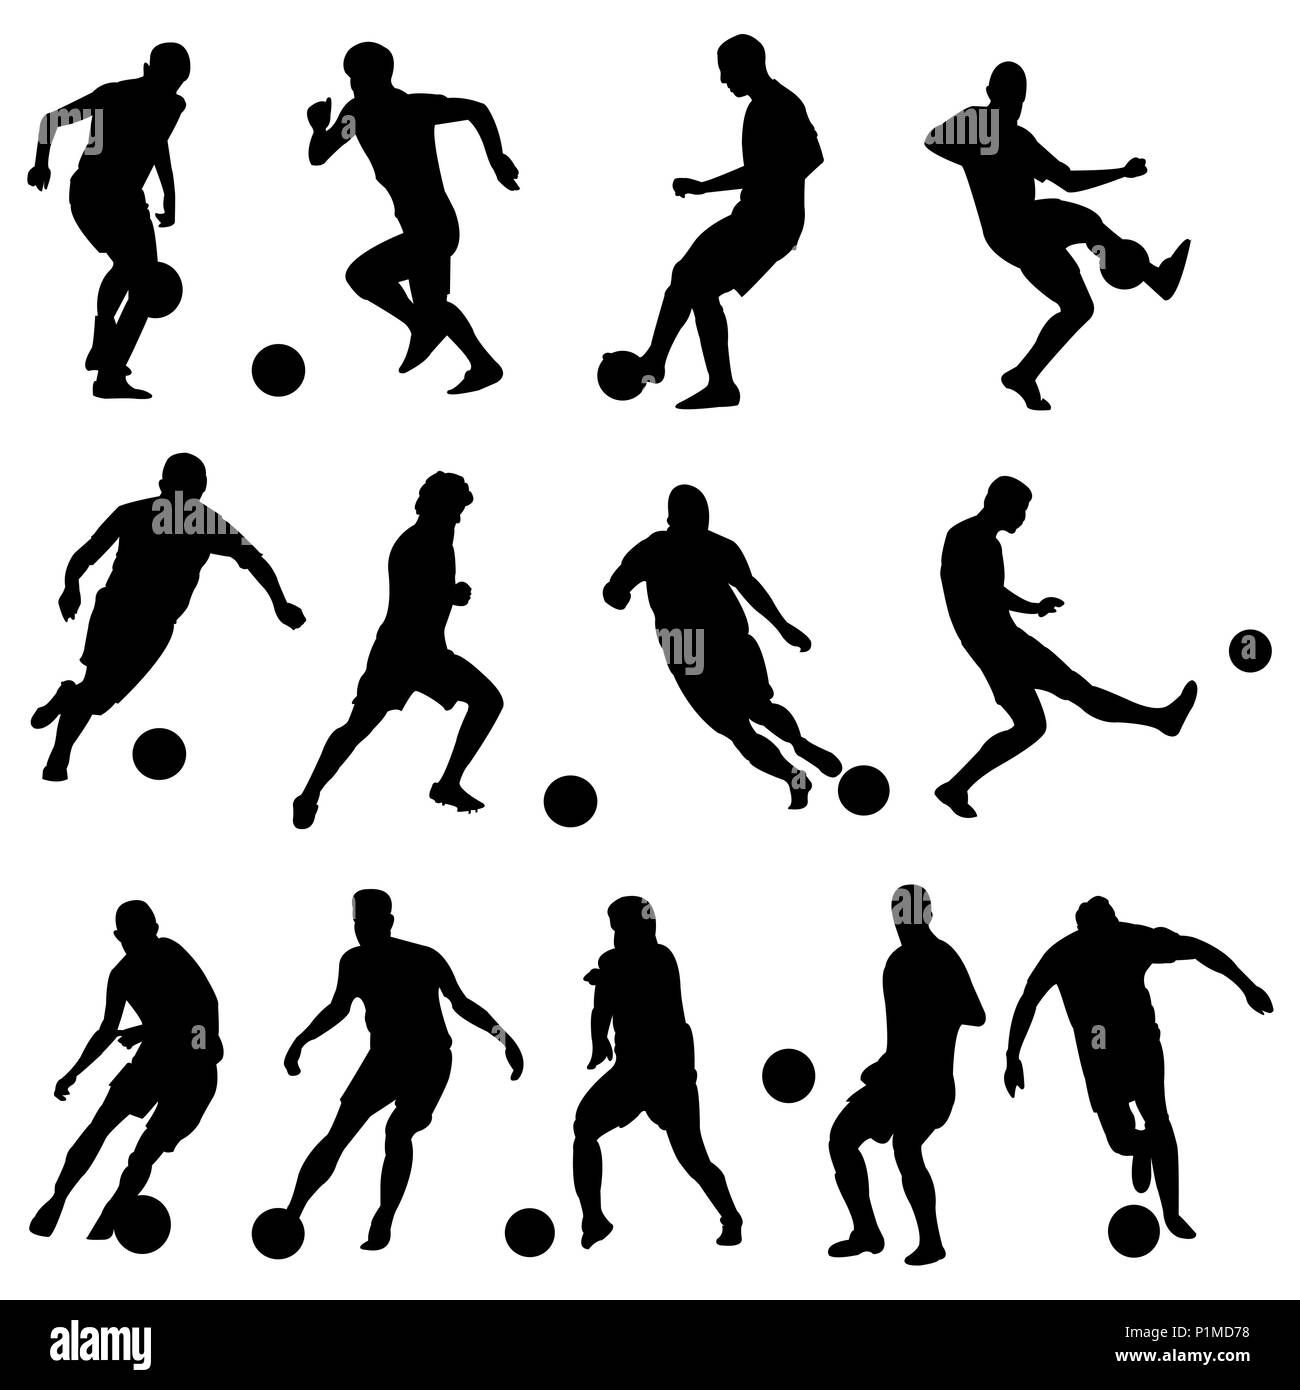 Silhouettes of football players - Stock Vector